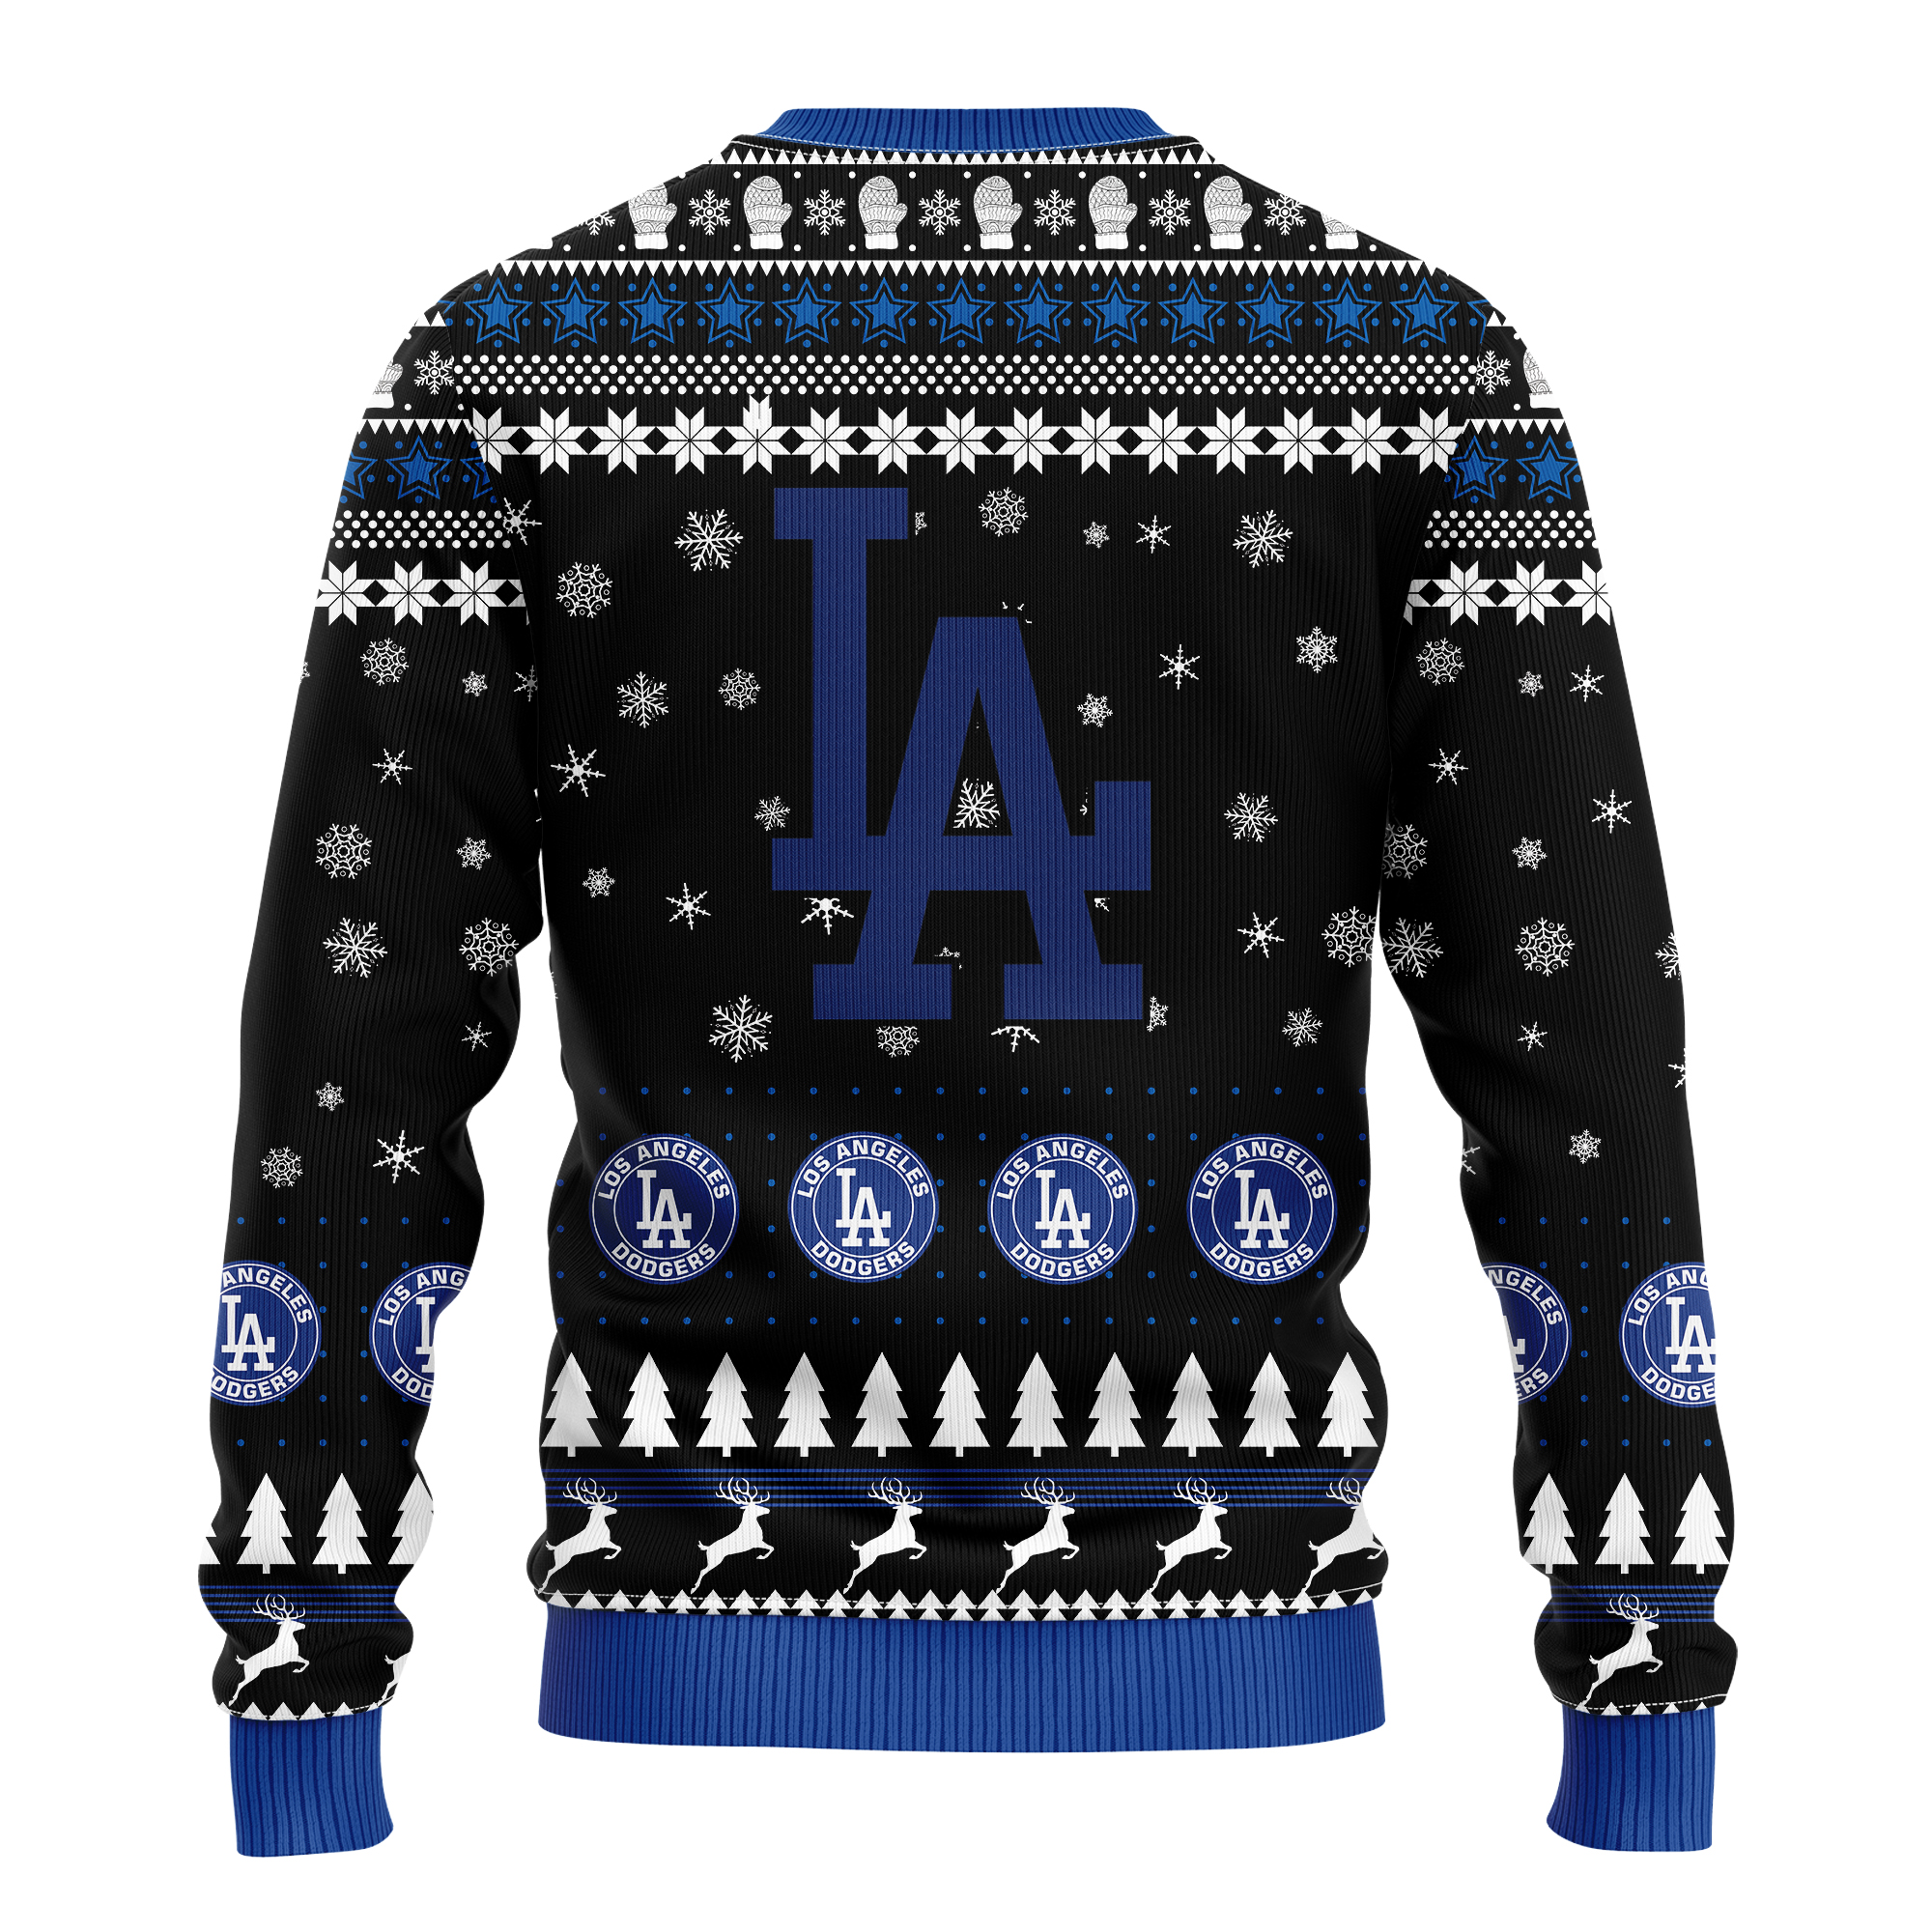 los angeles dodgers world champions 2020 all over printed ugly christmas sweater 3